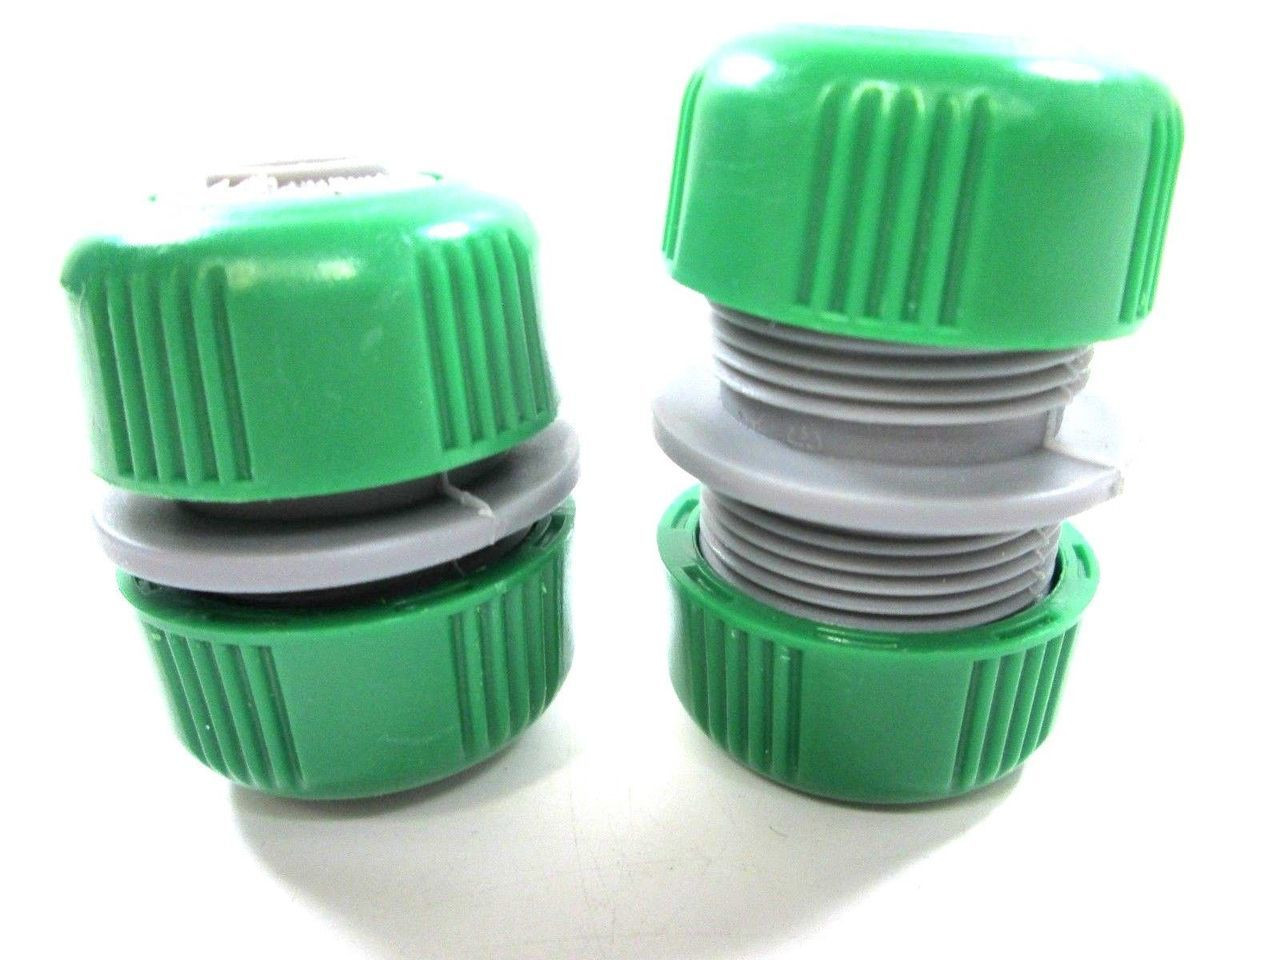 """2 x Hose Joiner 1/2"""" Leak Proof Connector Use On Rubber Or Plastic Hose 70133C"""